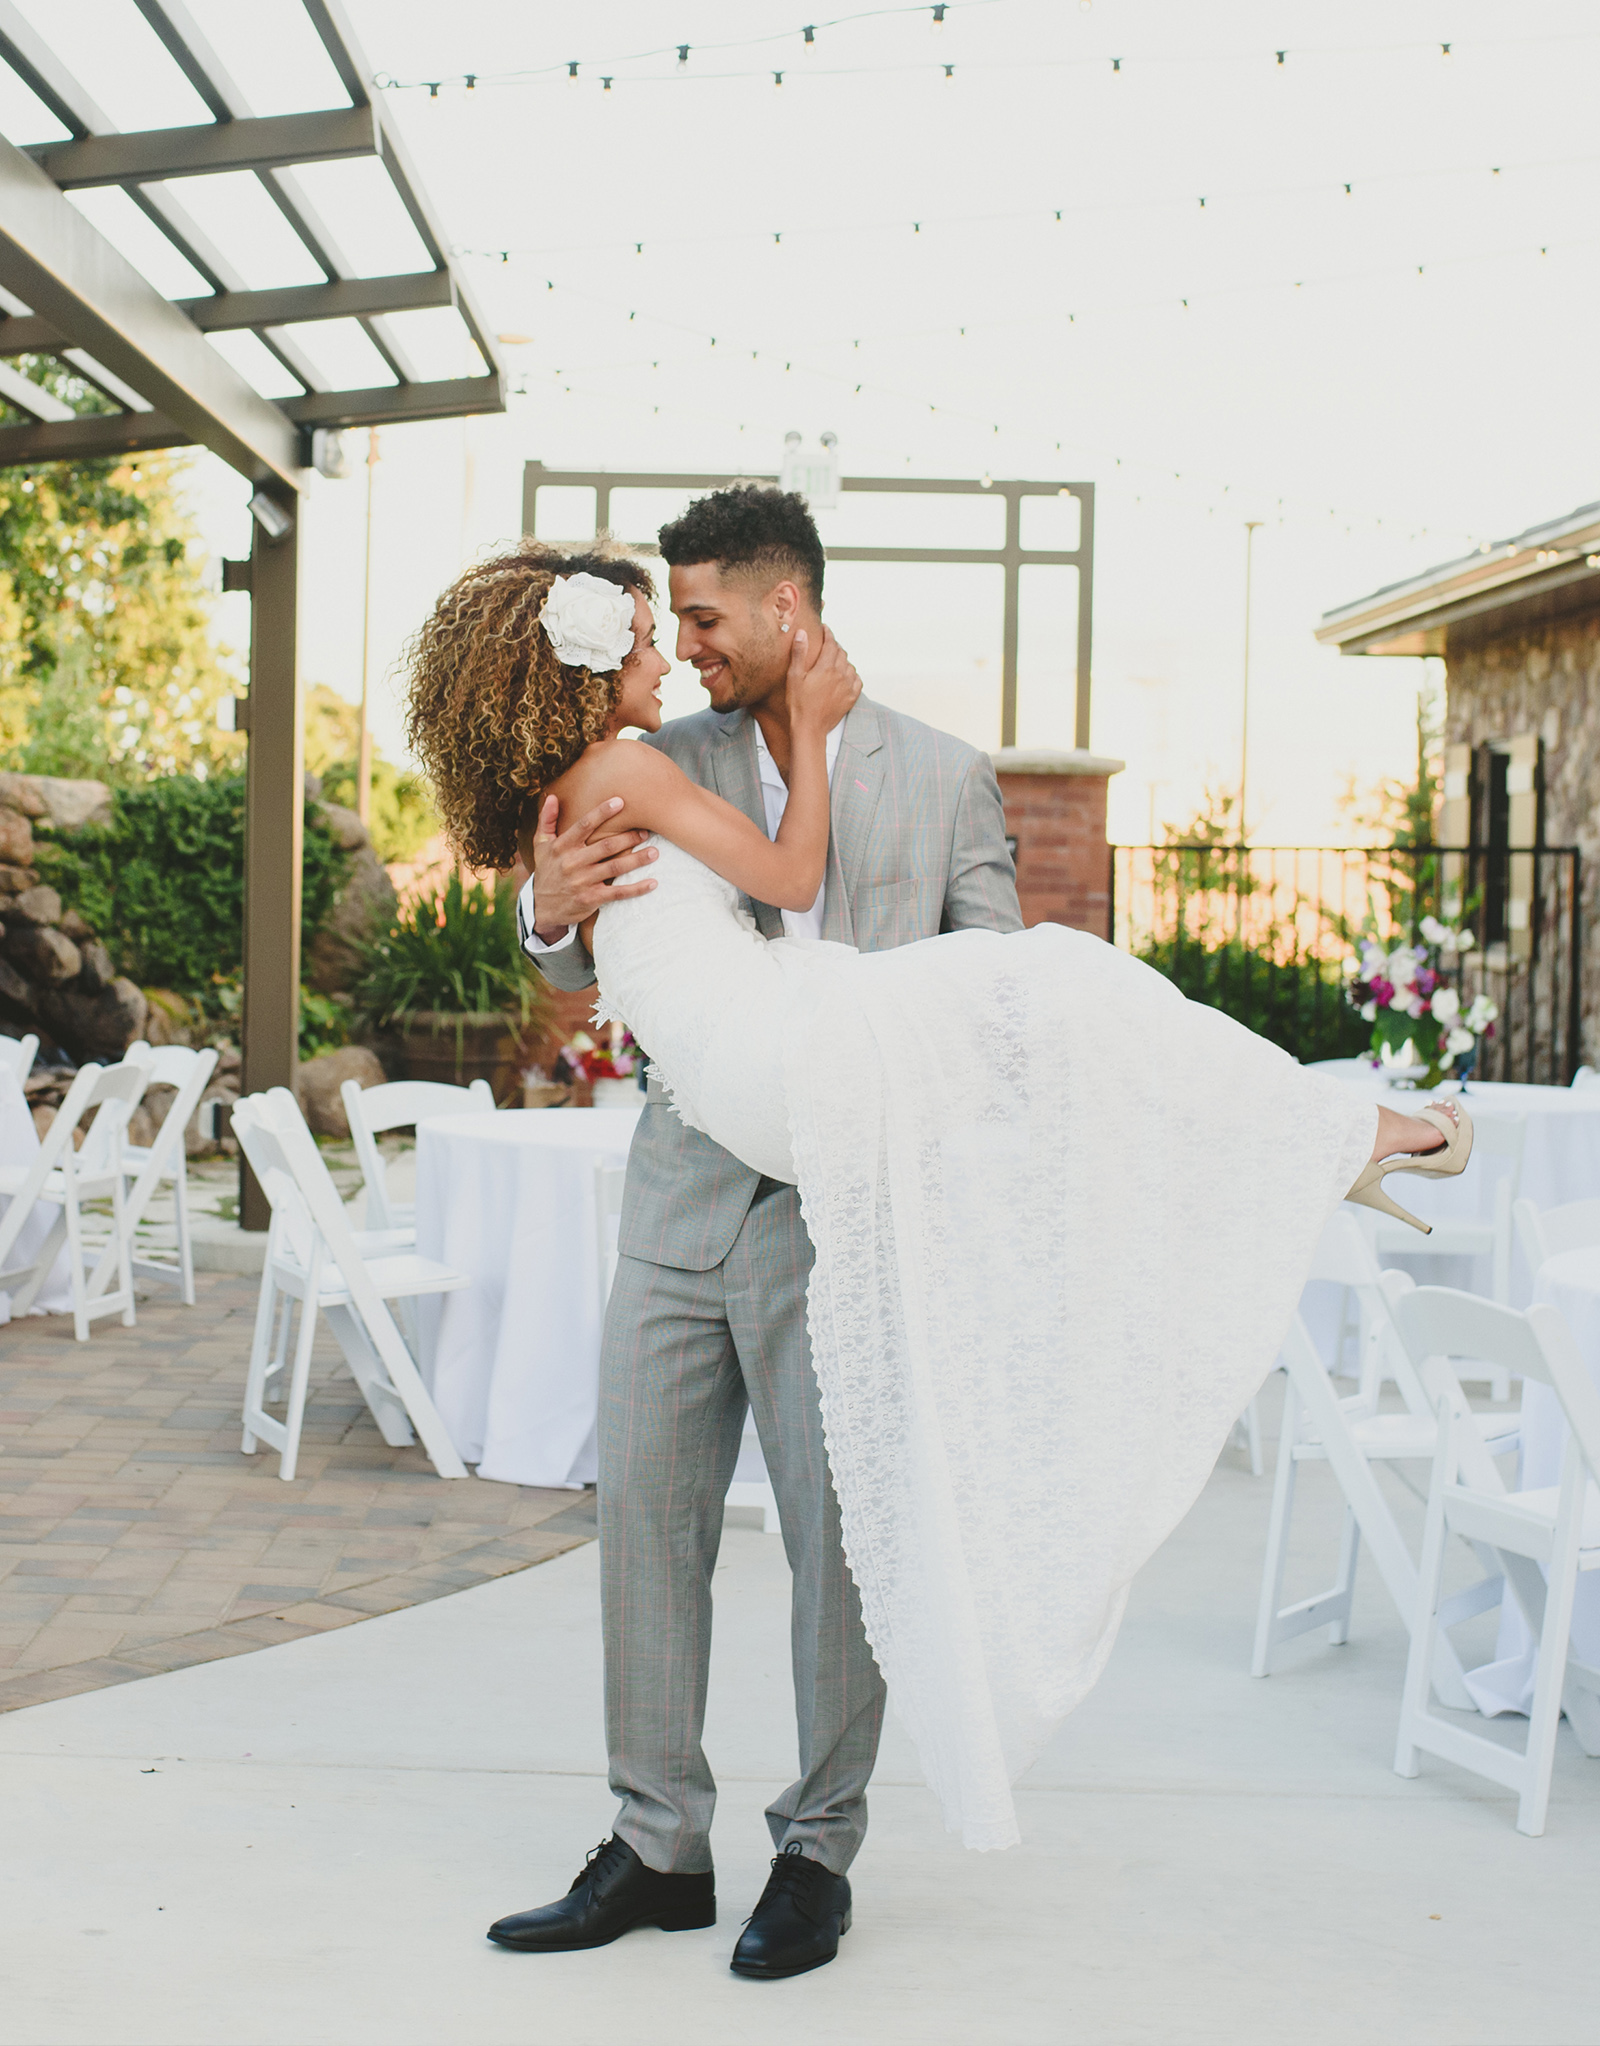 Groom carrying bride - Evergreen Springs - Elk Grove, California - Sacramento County - Wedgewood Weddings